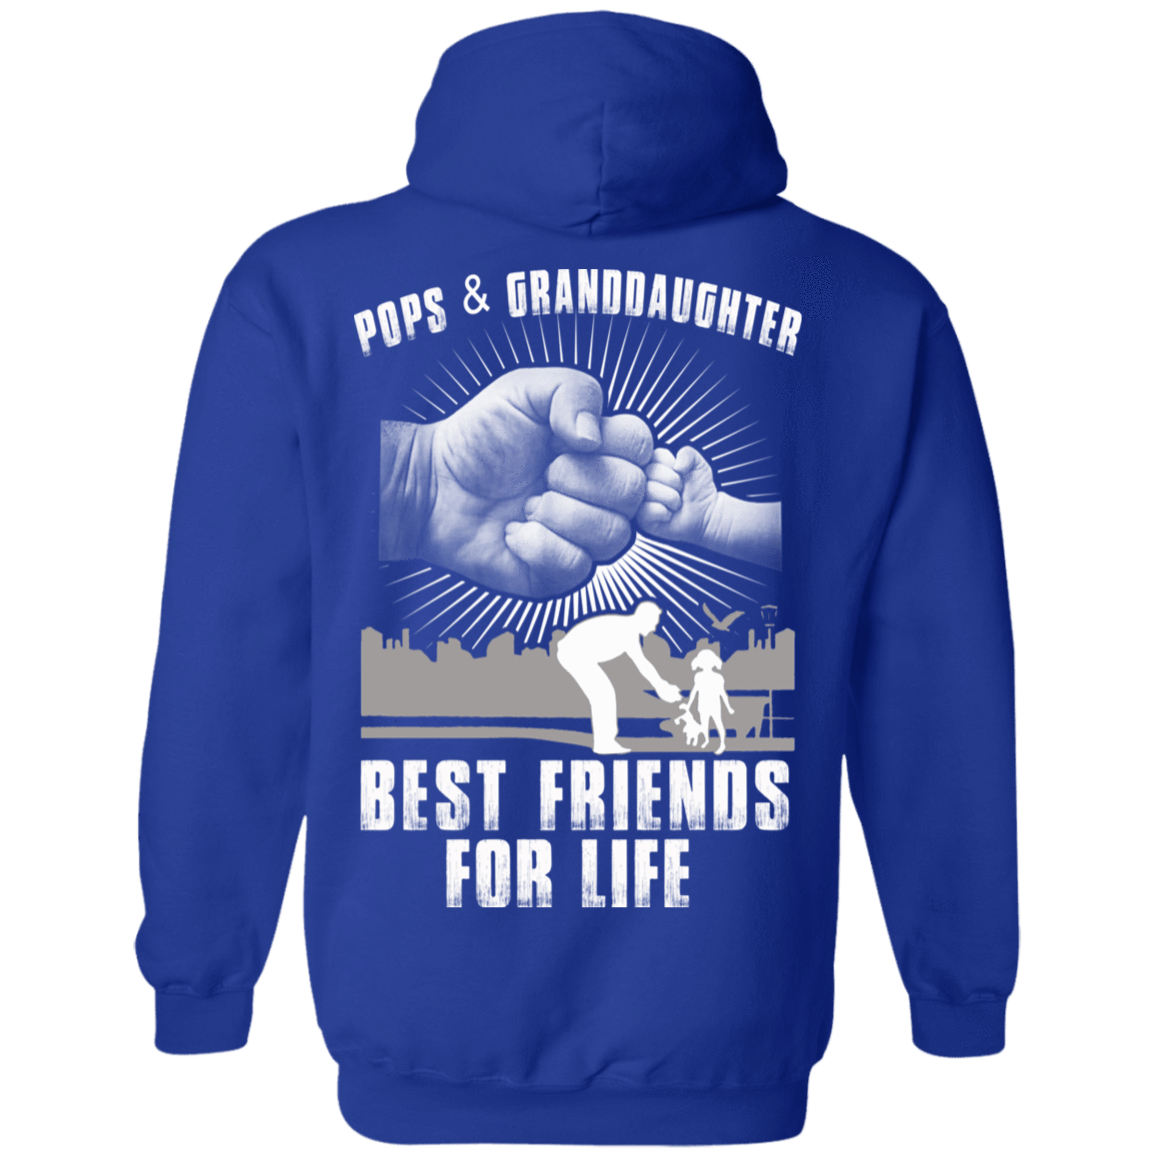 Pops And Granddaughter Best Friends For Life 541-4765-71996217-23175 - Tee Ript